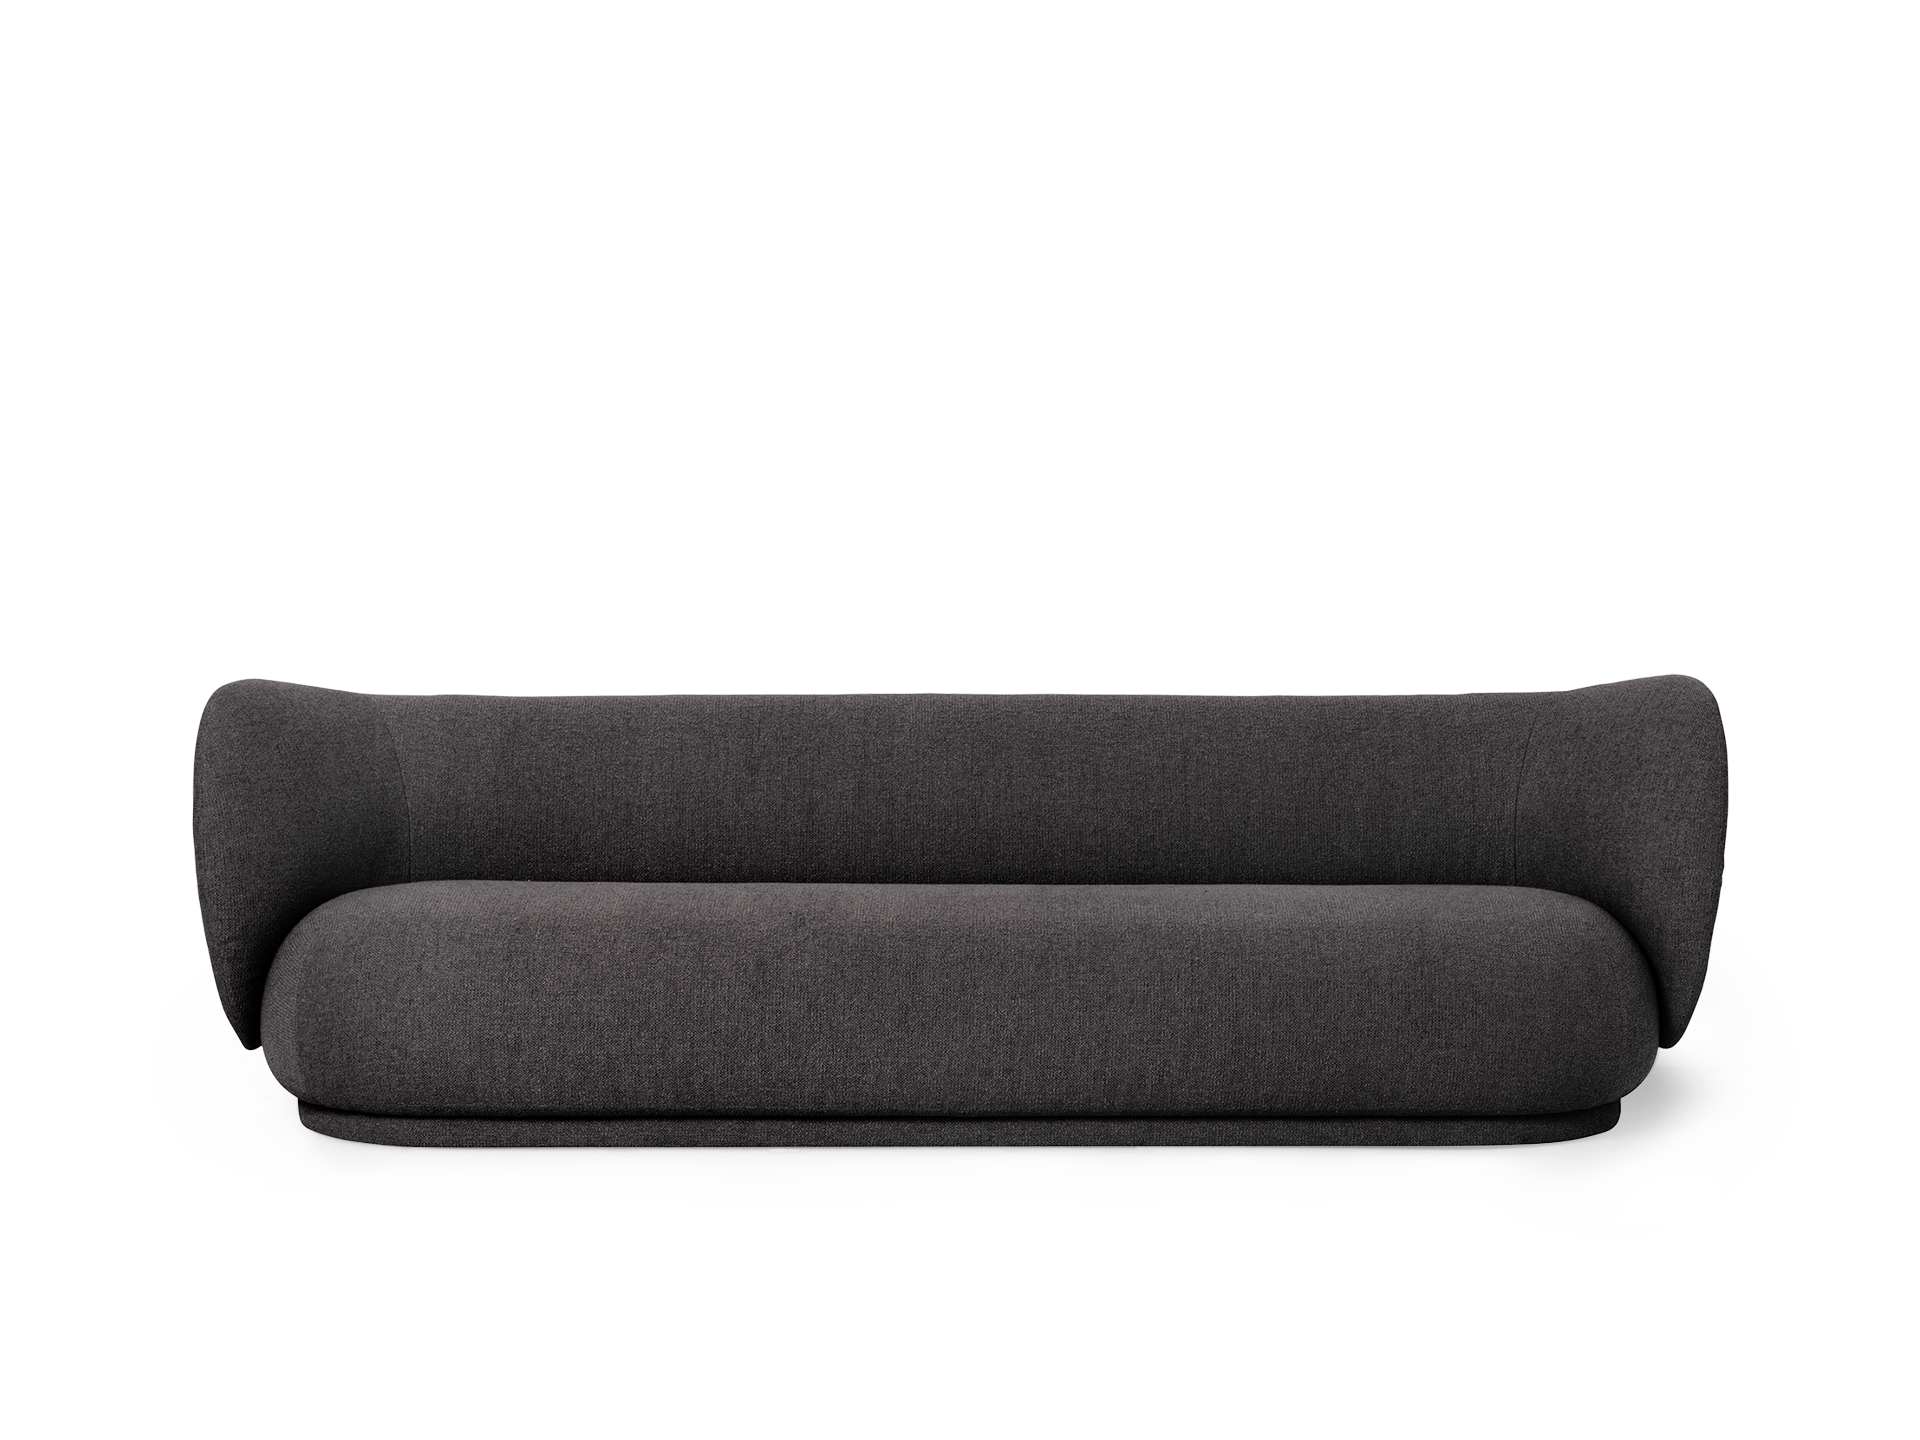 Rico 4 Seater - Warm Dark Grey - Side - Transparent Background